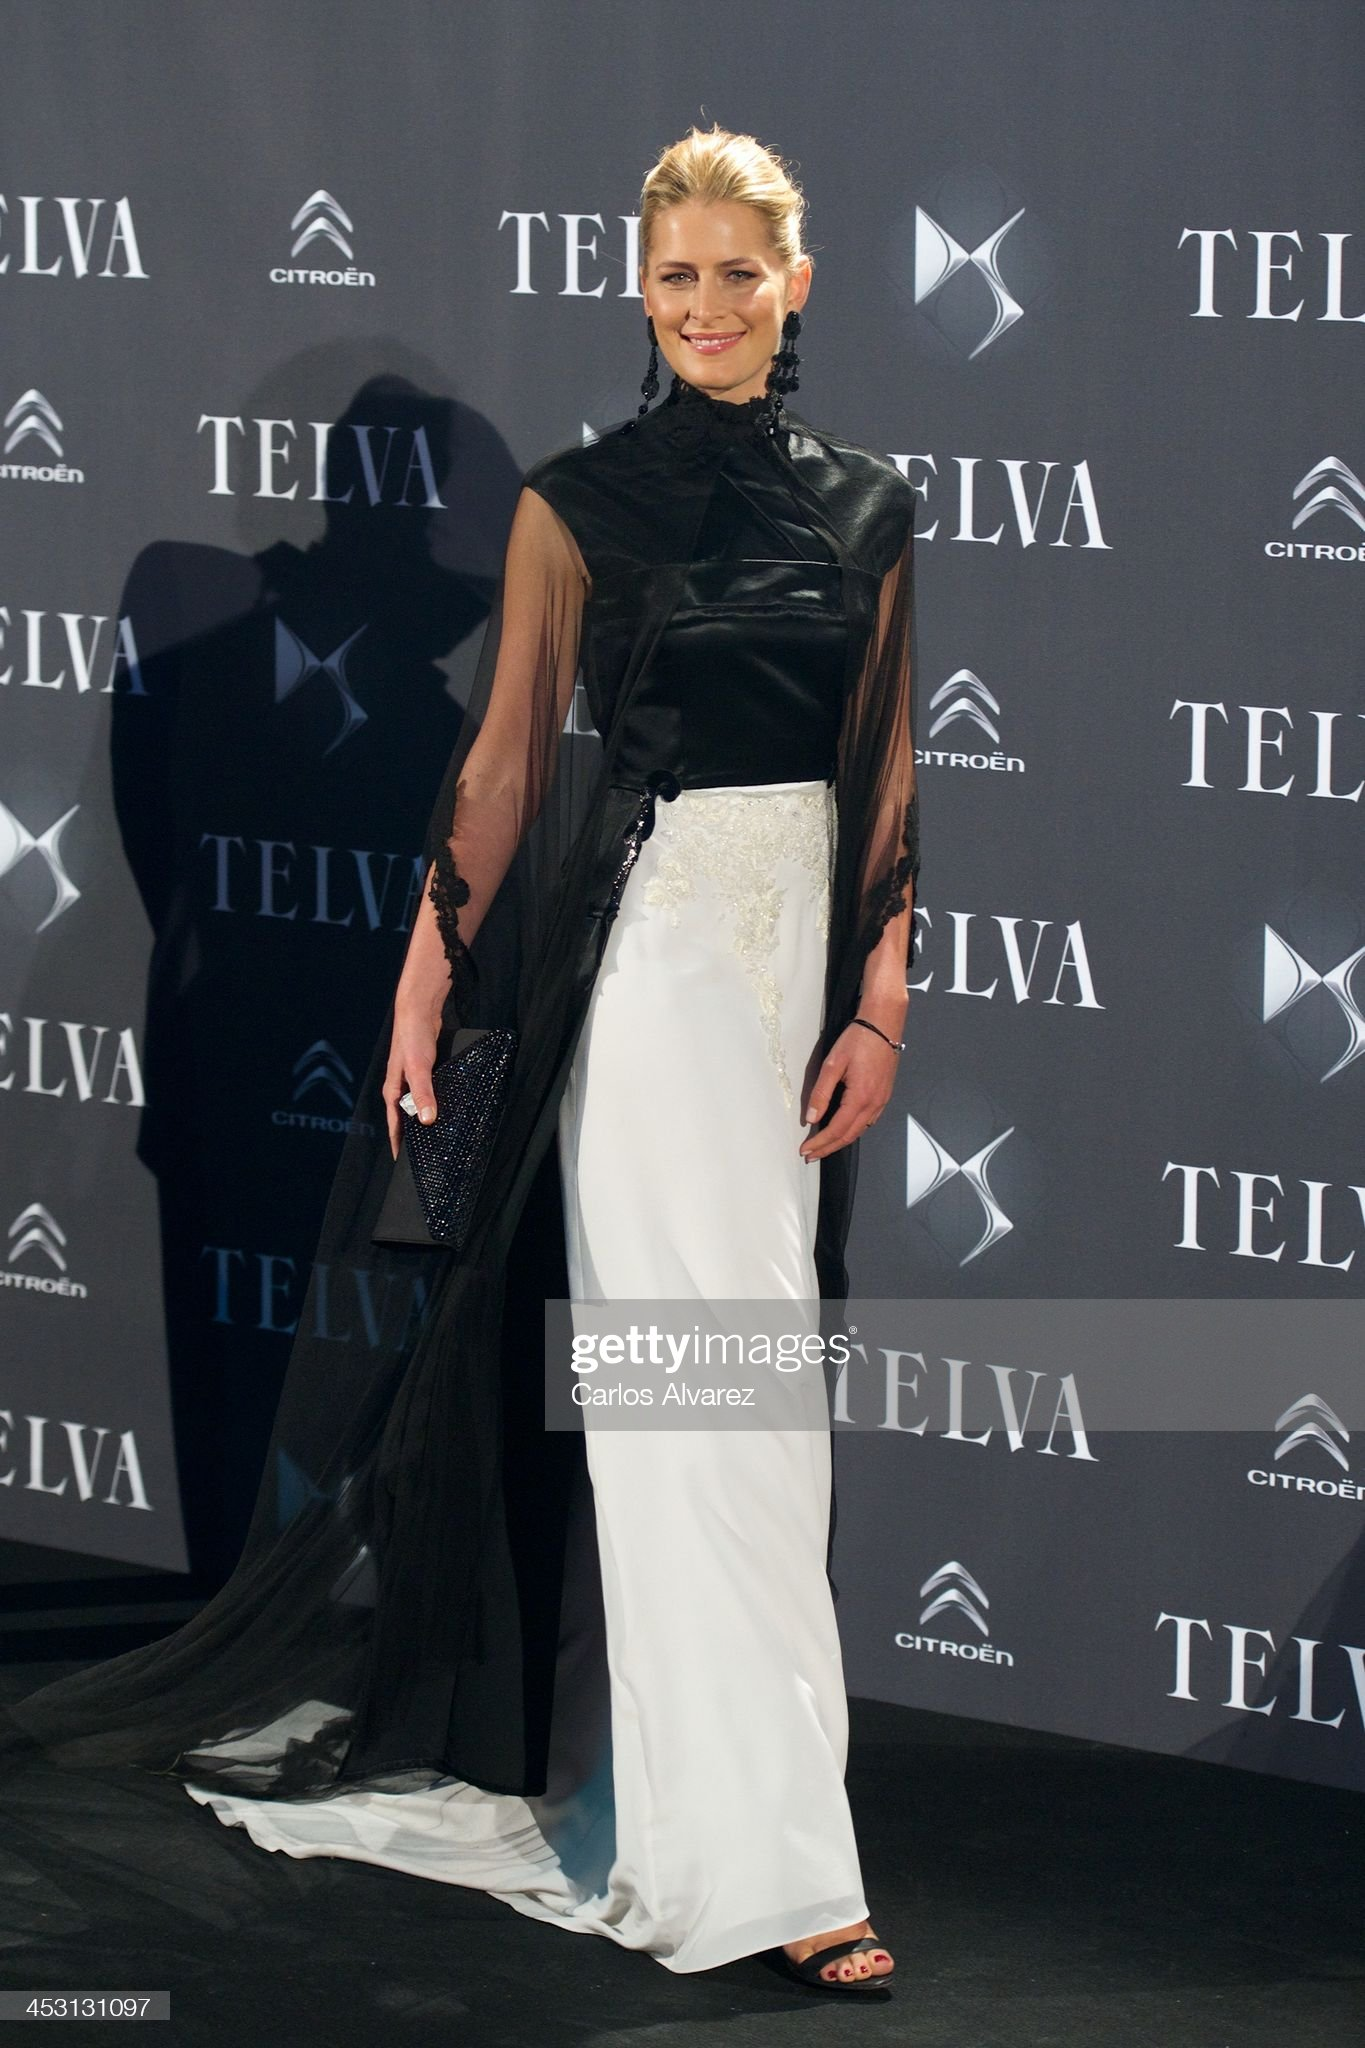 2013 Telva Fashion Awards : News Photo